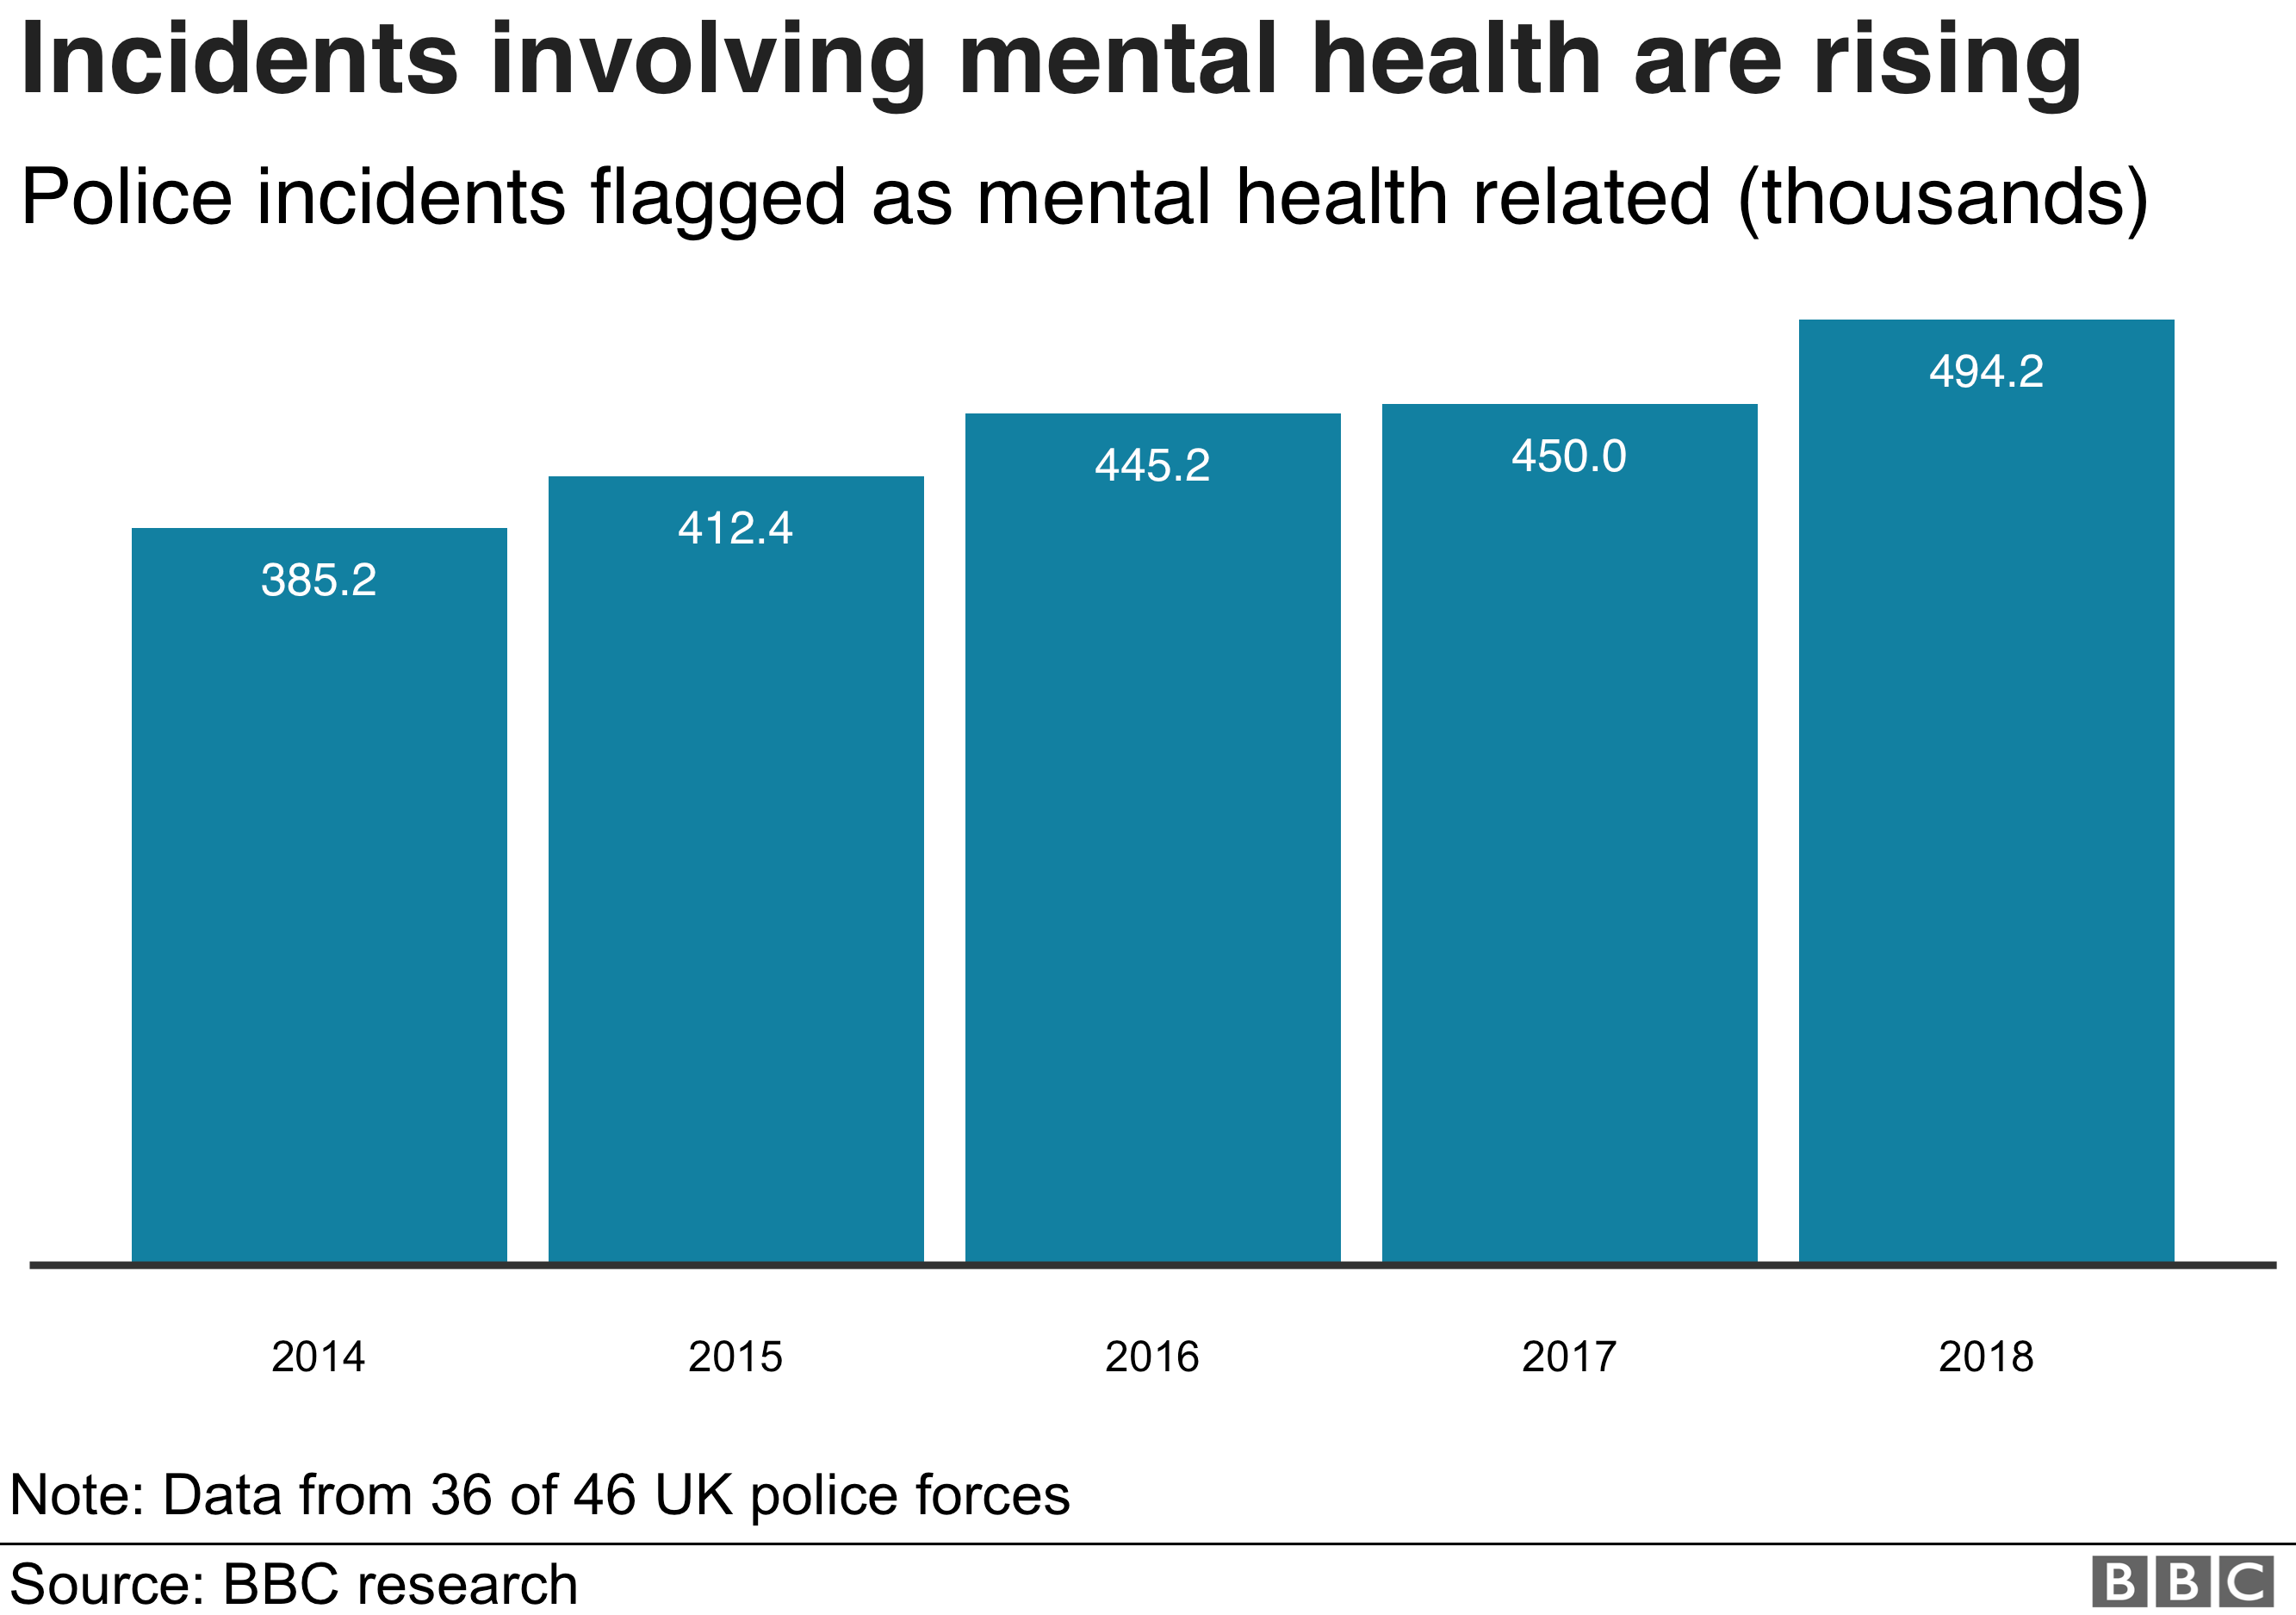 chart showing mental health incidents